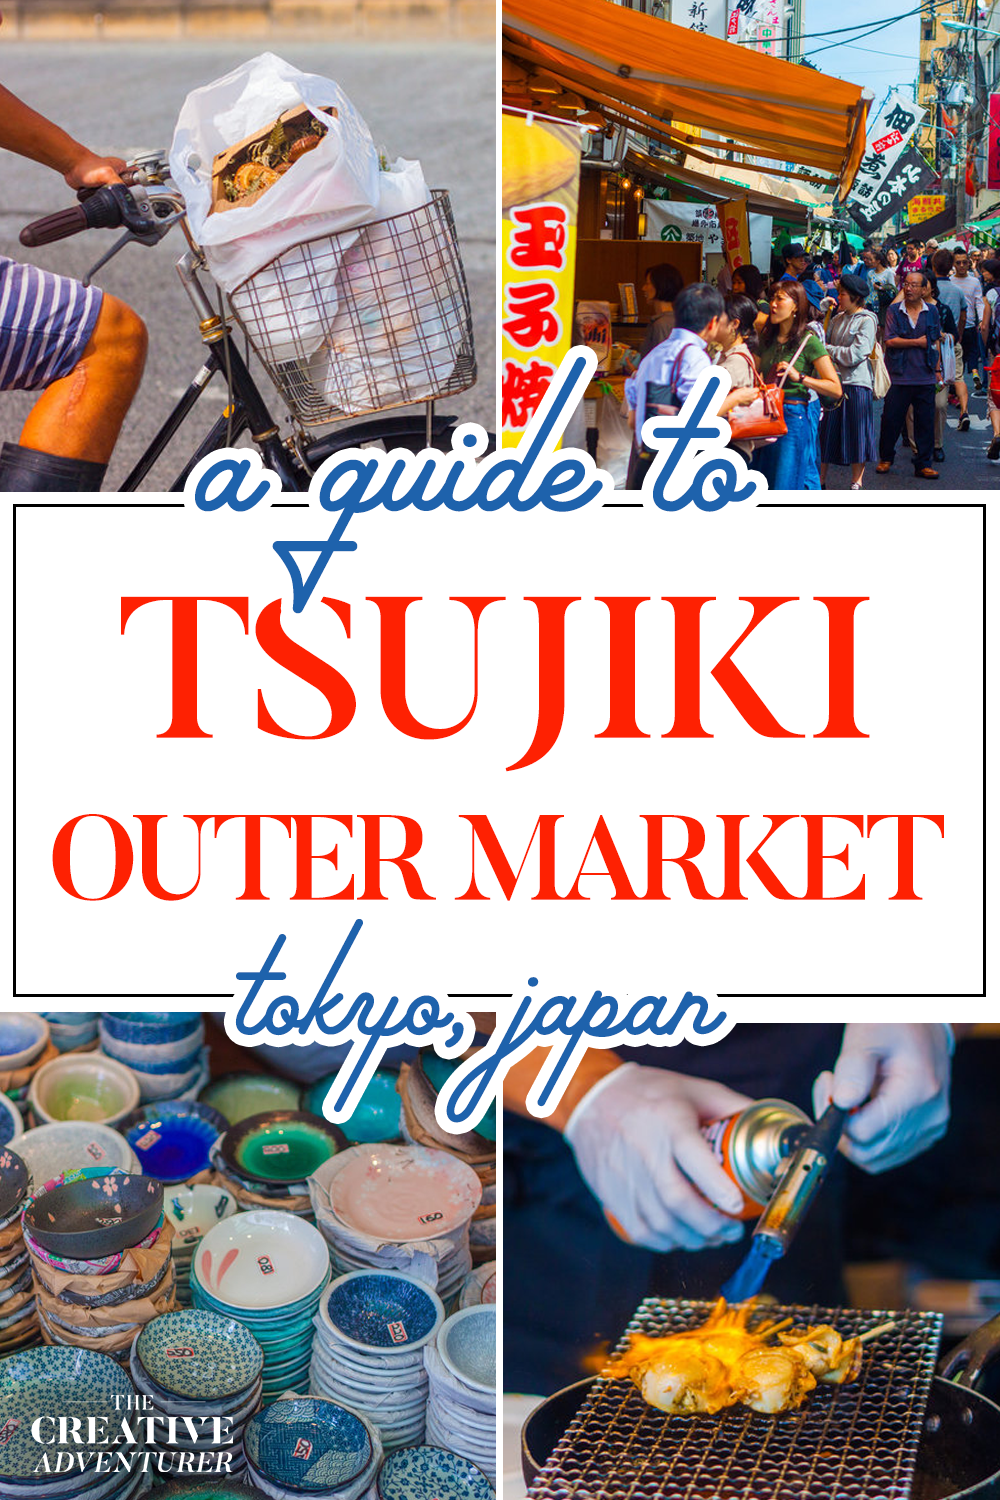 Guide to the the Tsukiji Outer Market